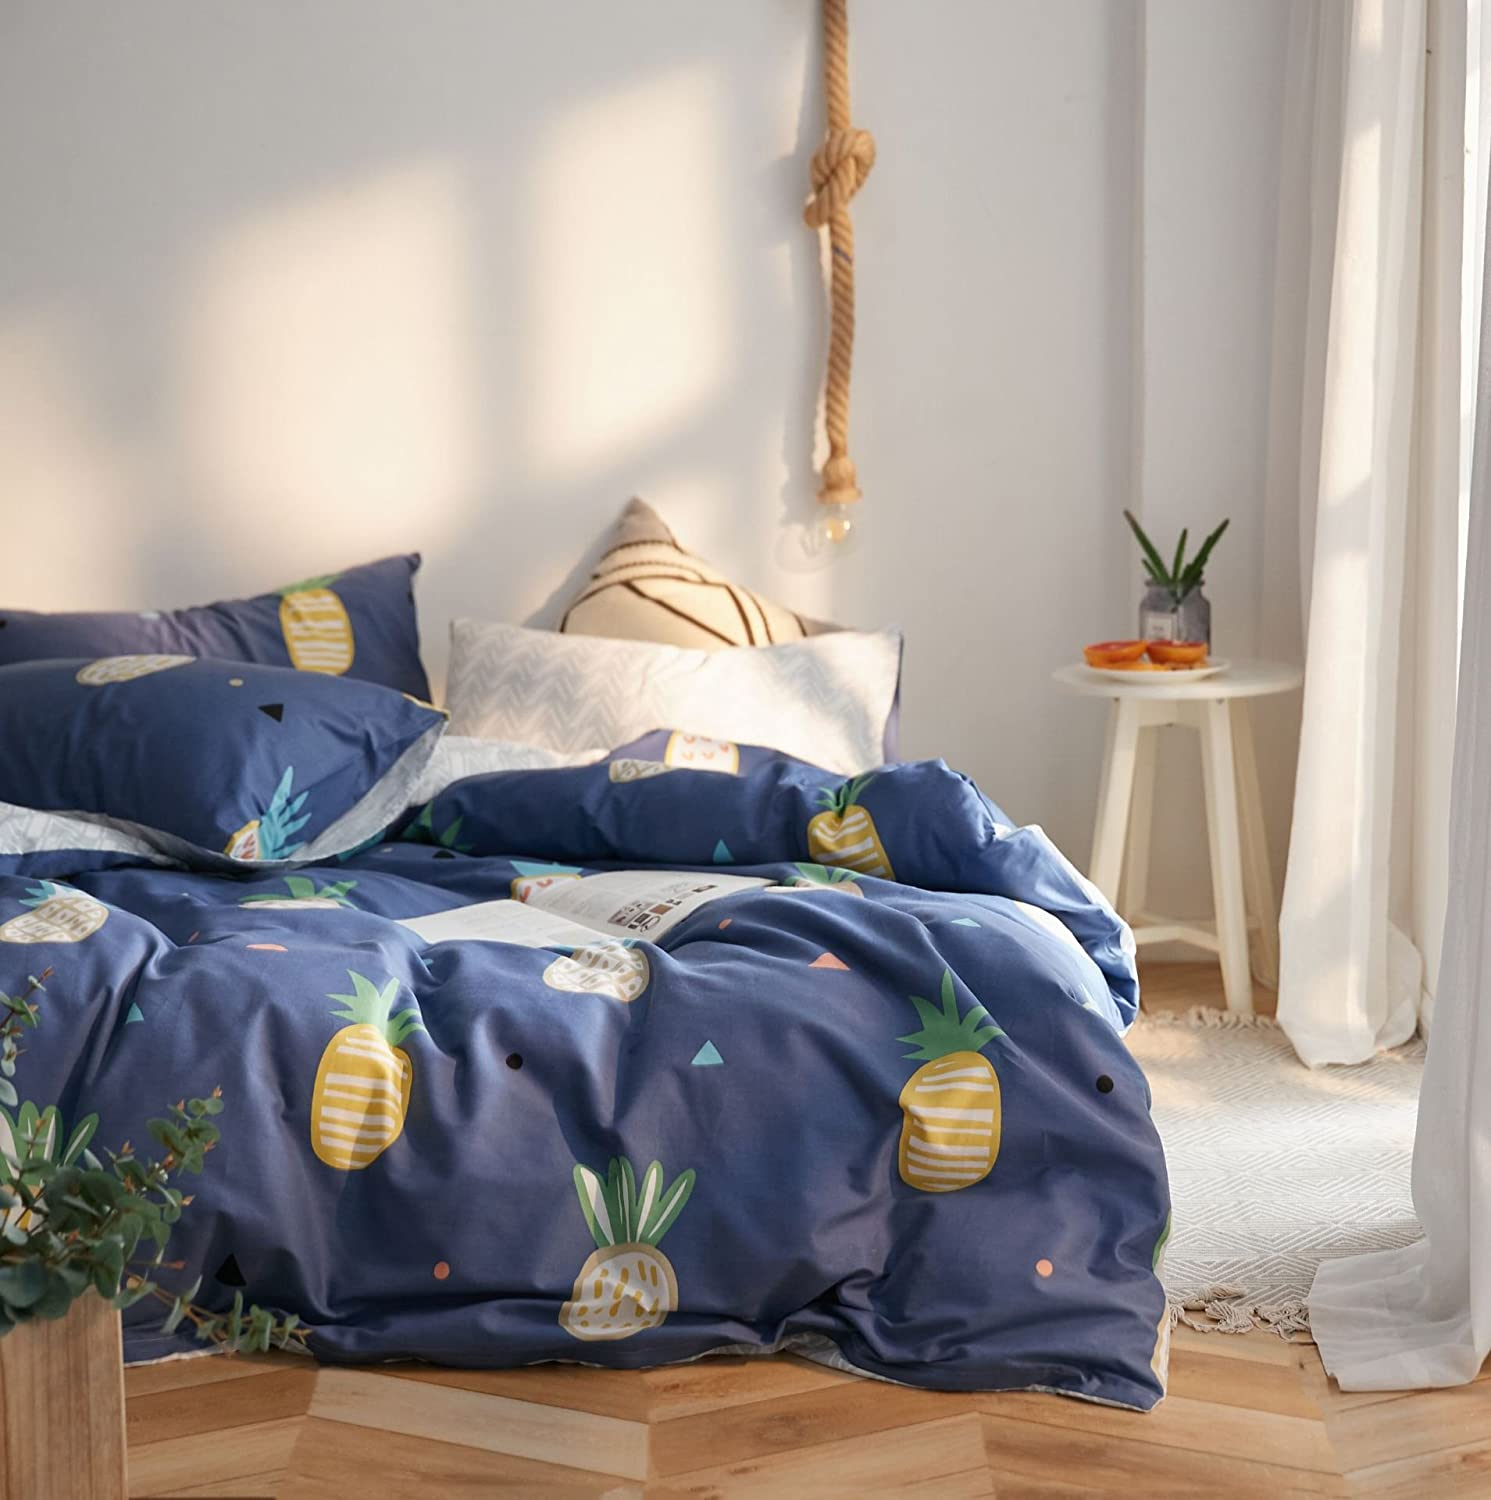 Jane yre Queen Pineapple Duvet Cover Cotton,Reversible Pineapple Blue Duvet Cover,3 Pieces Lightweight Queen Bedding Sets,1 Queen Duvet Cover + 2 ...